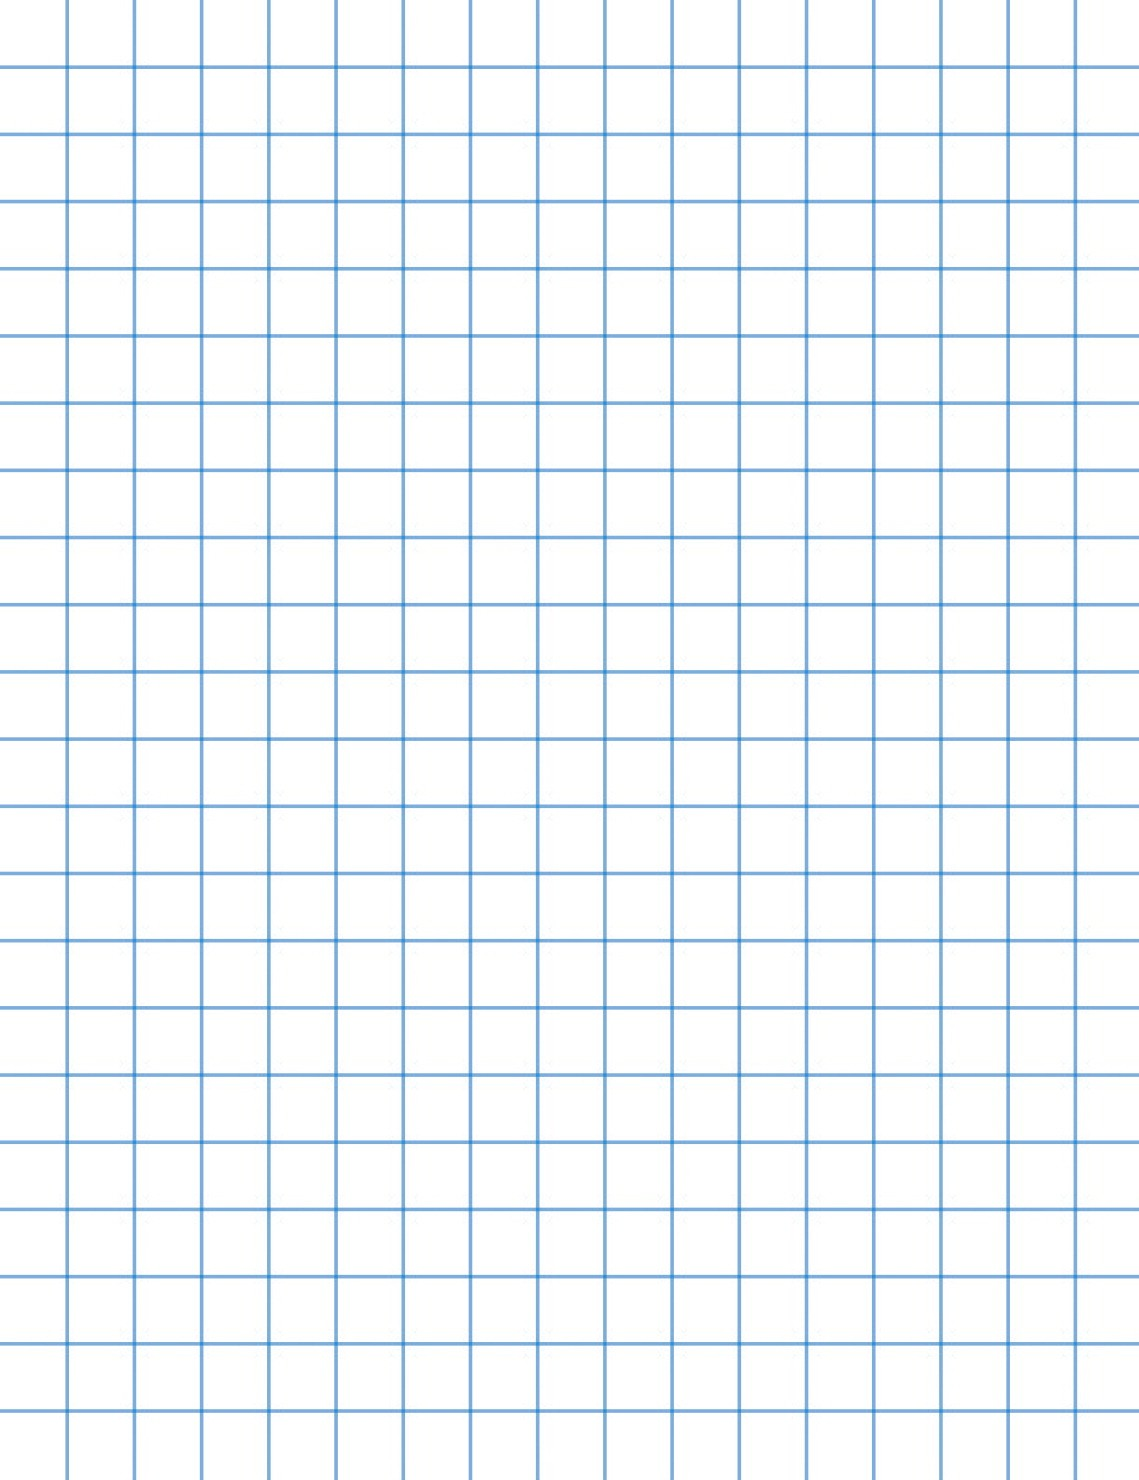 8-1/2 X 11 Graph Paper, 1/8 Rule, White, 16#, Two Sides - 500/Ream